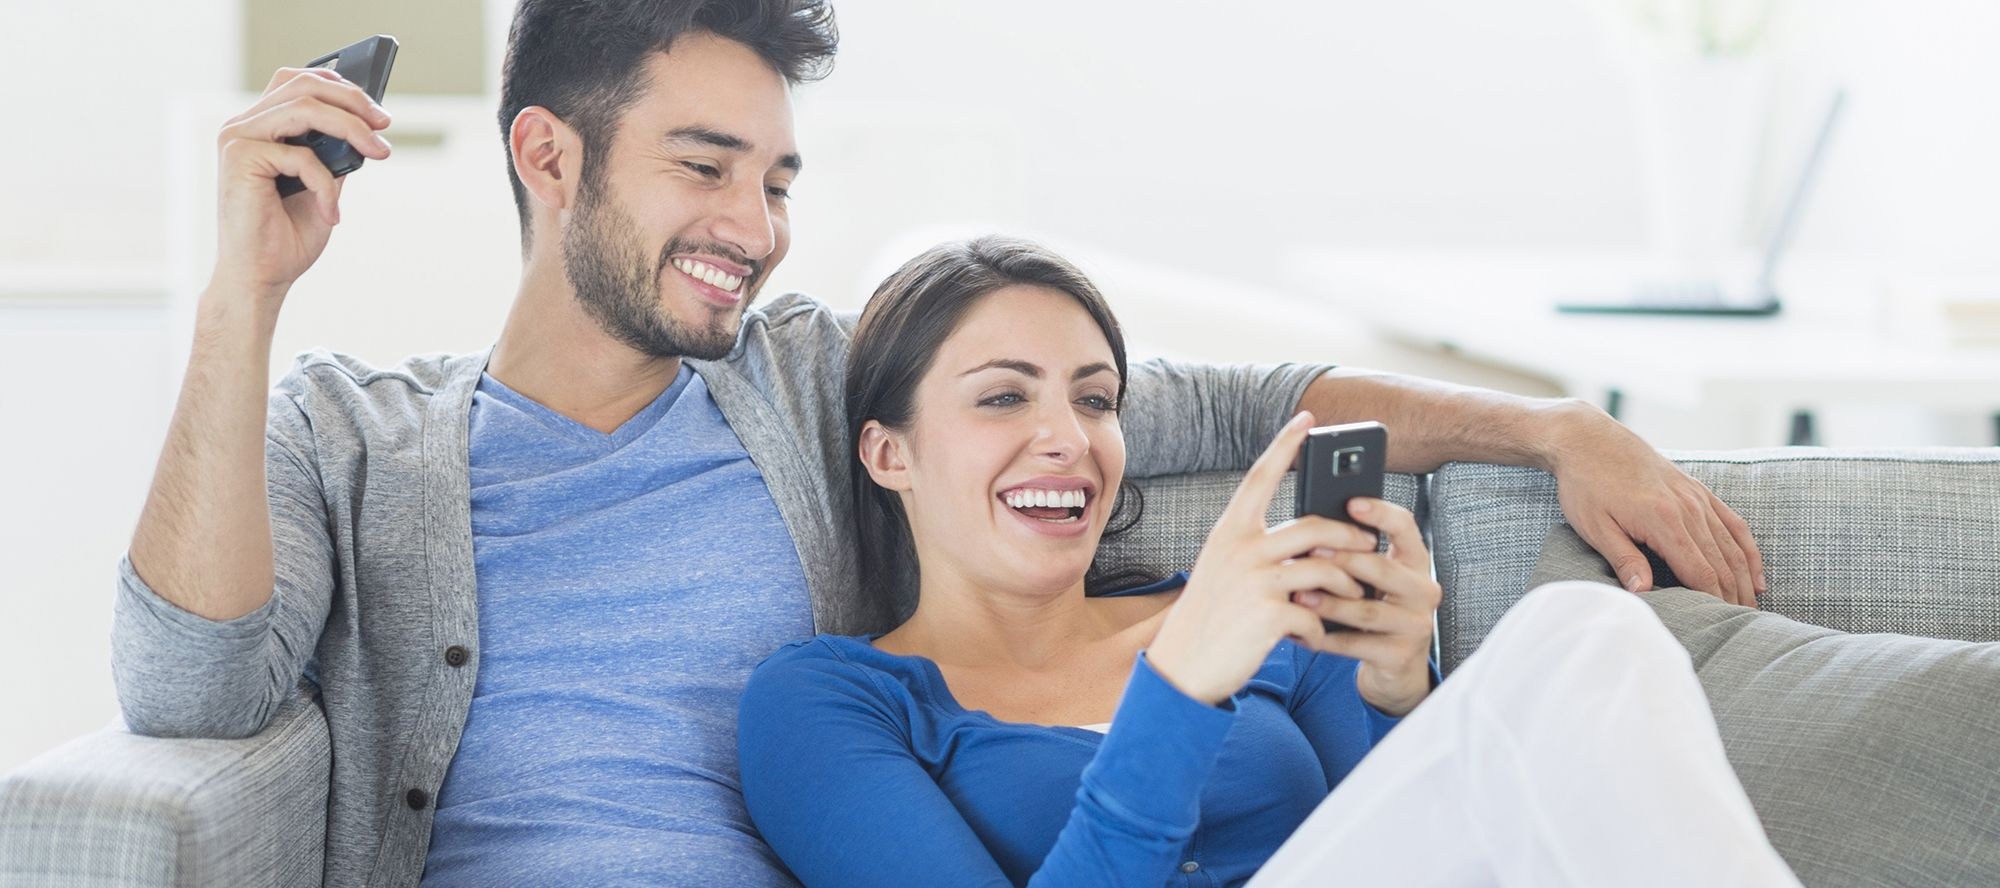 man-and-woman-on-couch-looking-at-phone